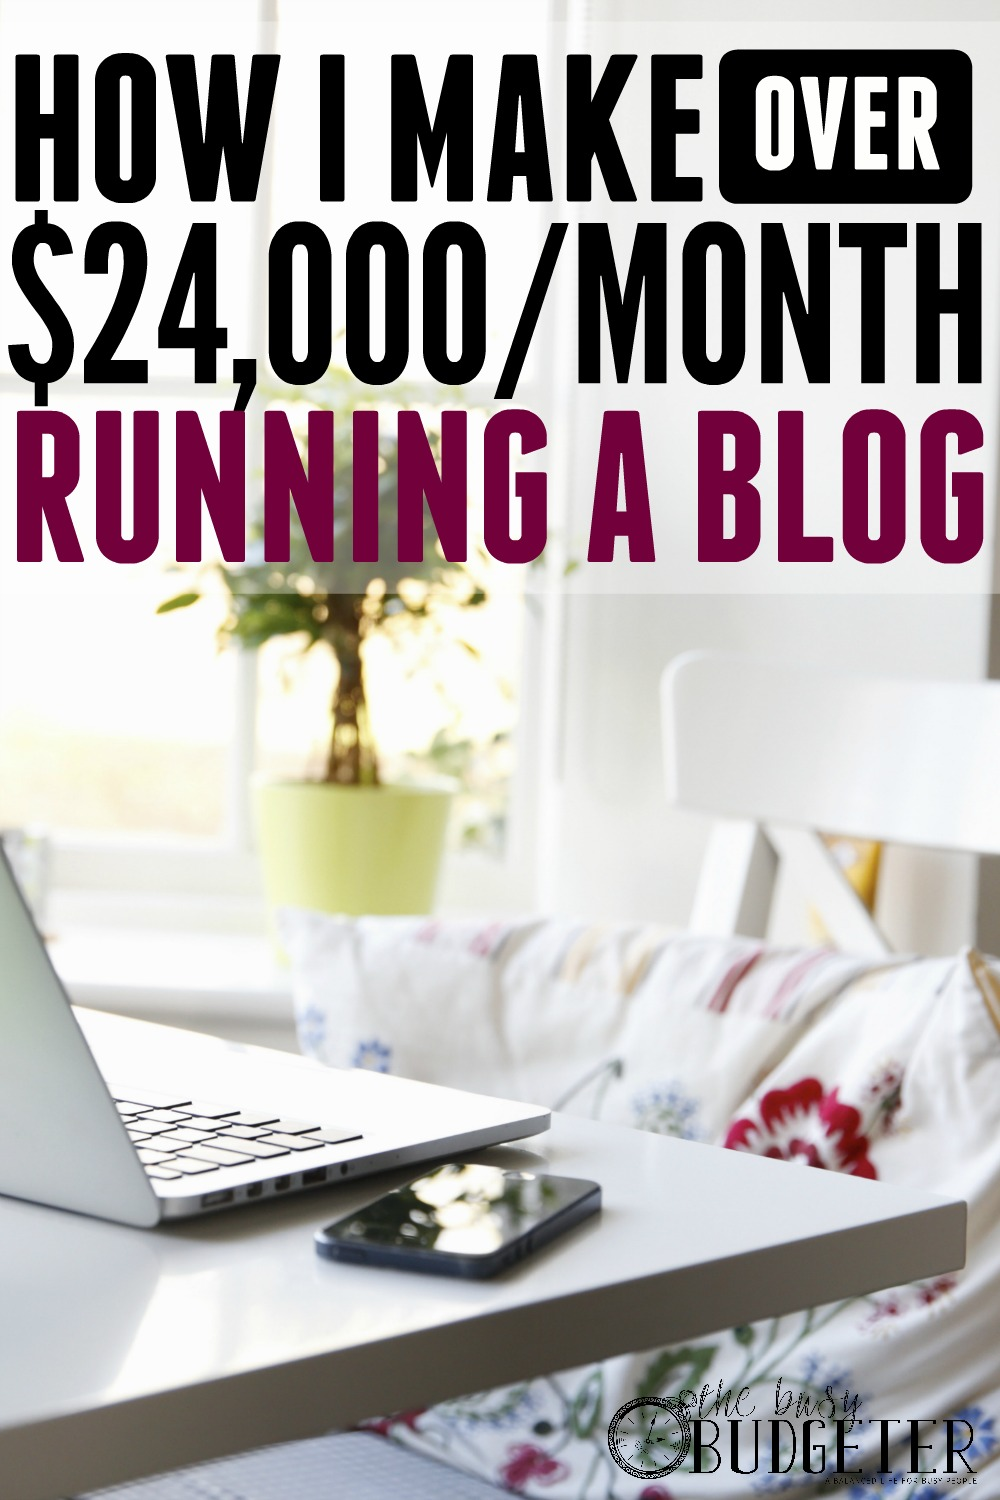 How I make over $24,000/month running a blog. ***LOVE*** I've read this girls blog from almost the beginning. It was crazy to see her grow it so quickly! I love that she's so honest about exactly what makes her money blogging and the strategy that she followed to get there.